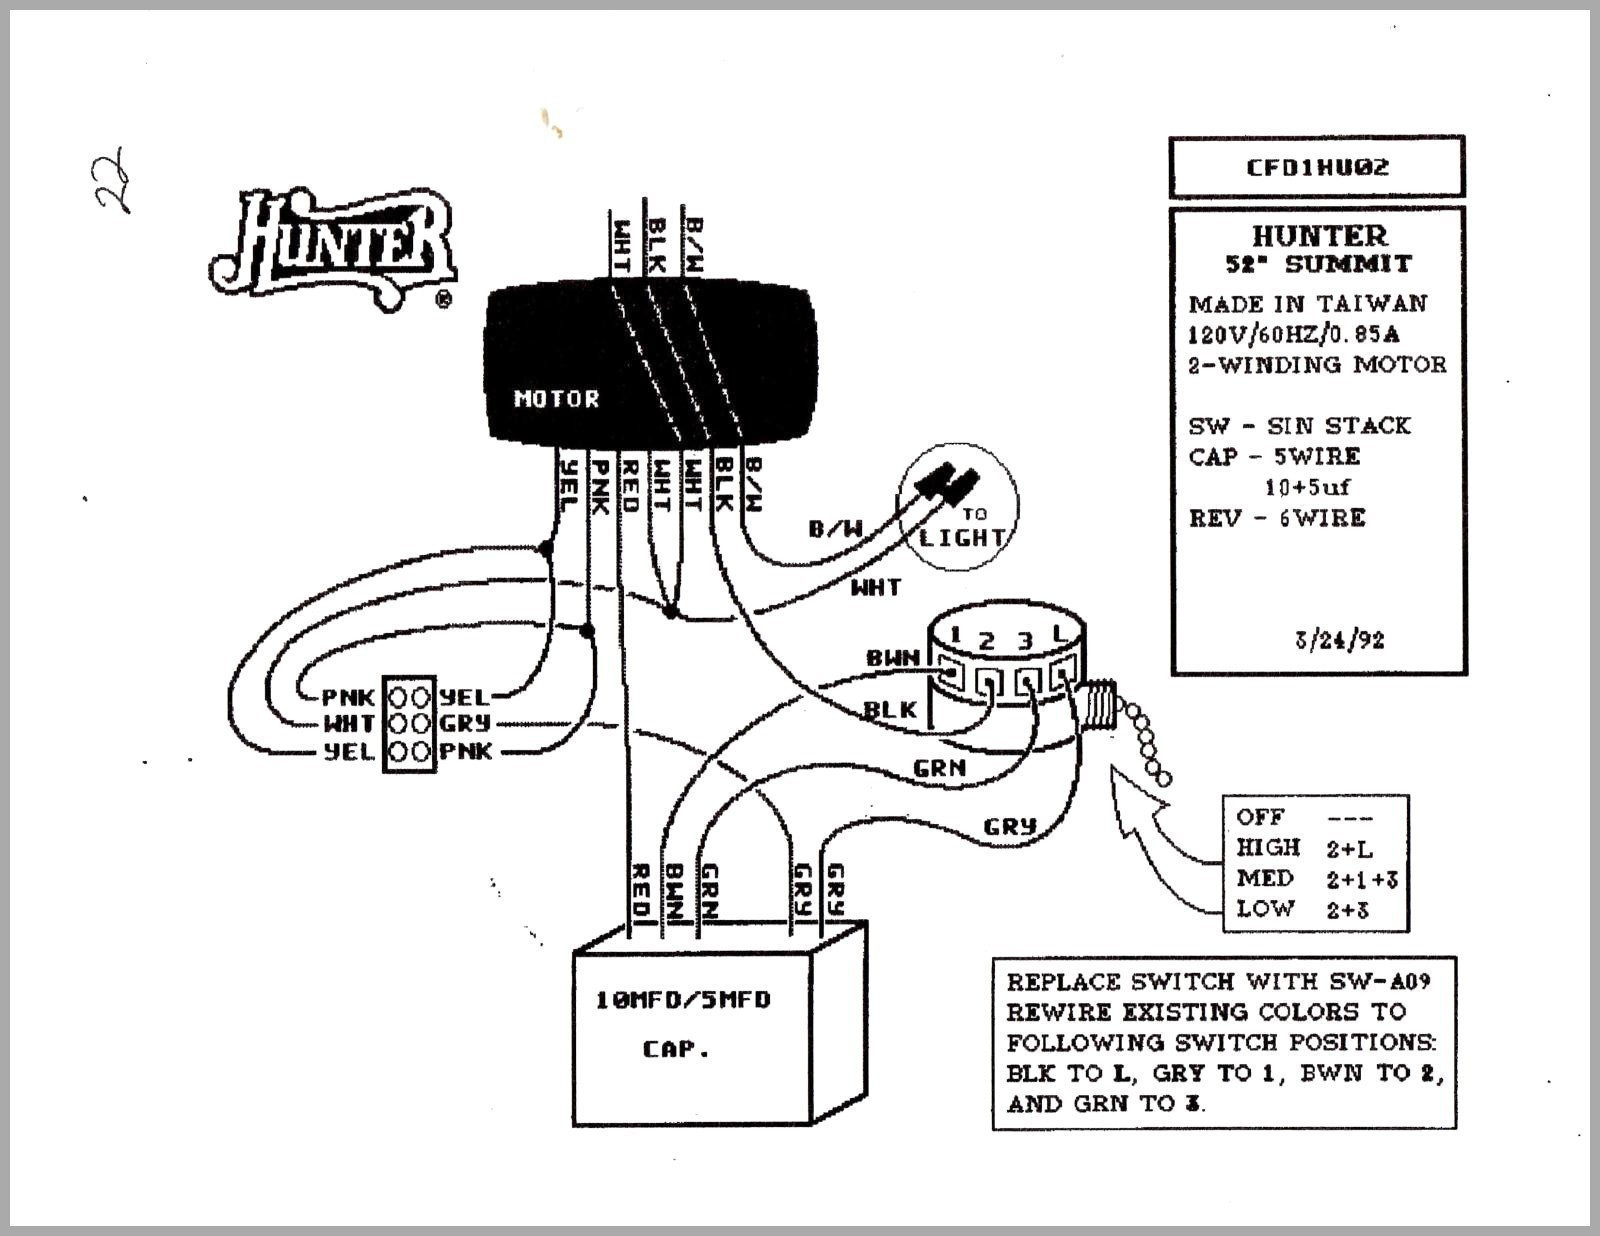 westinghouse fan wiring diagram custom wiring diagram u2022 rh littlewaves co